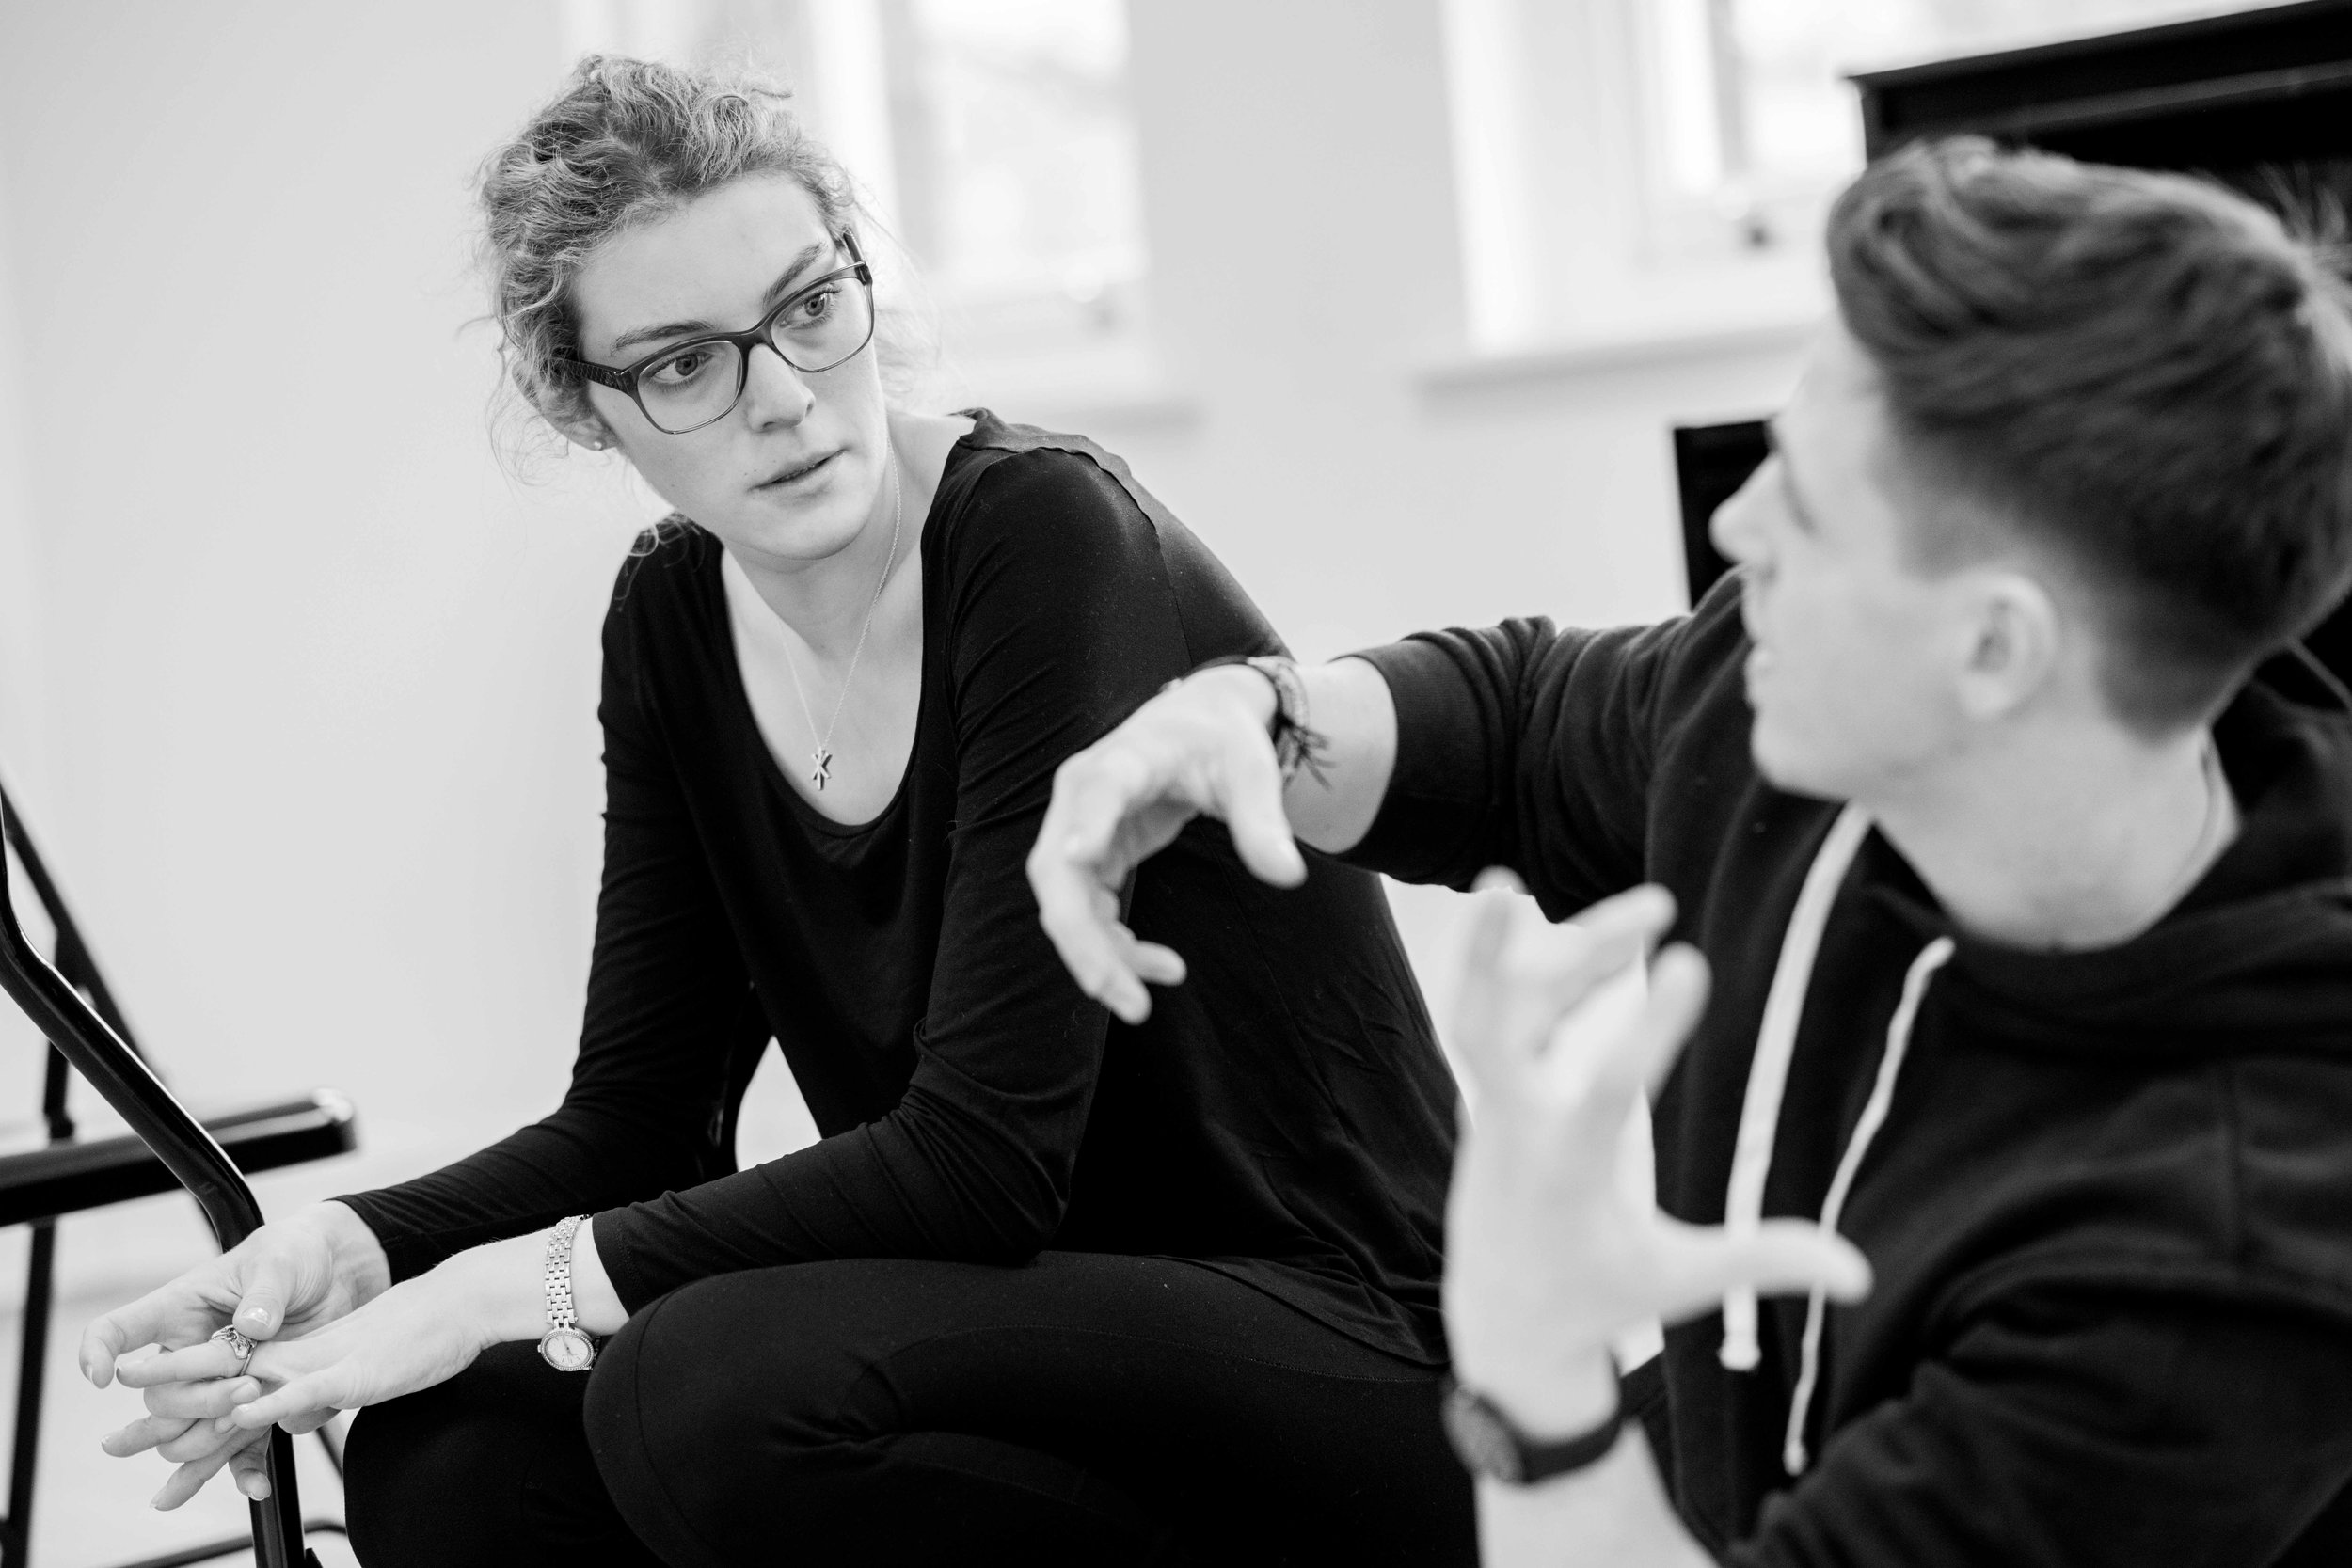 CamillaGreenwell_MEIWES_BRANDES_Rehearsals_6183-LOWRES.jpg